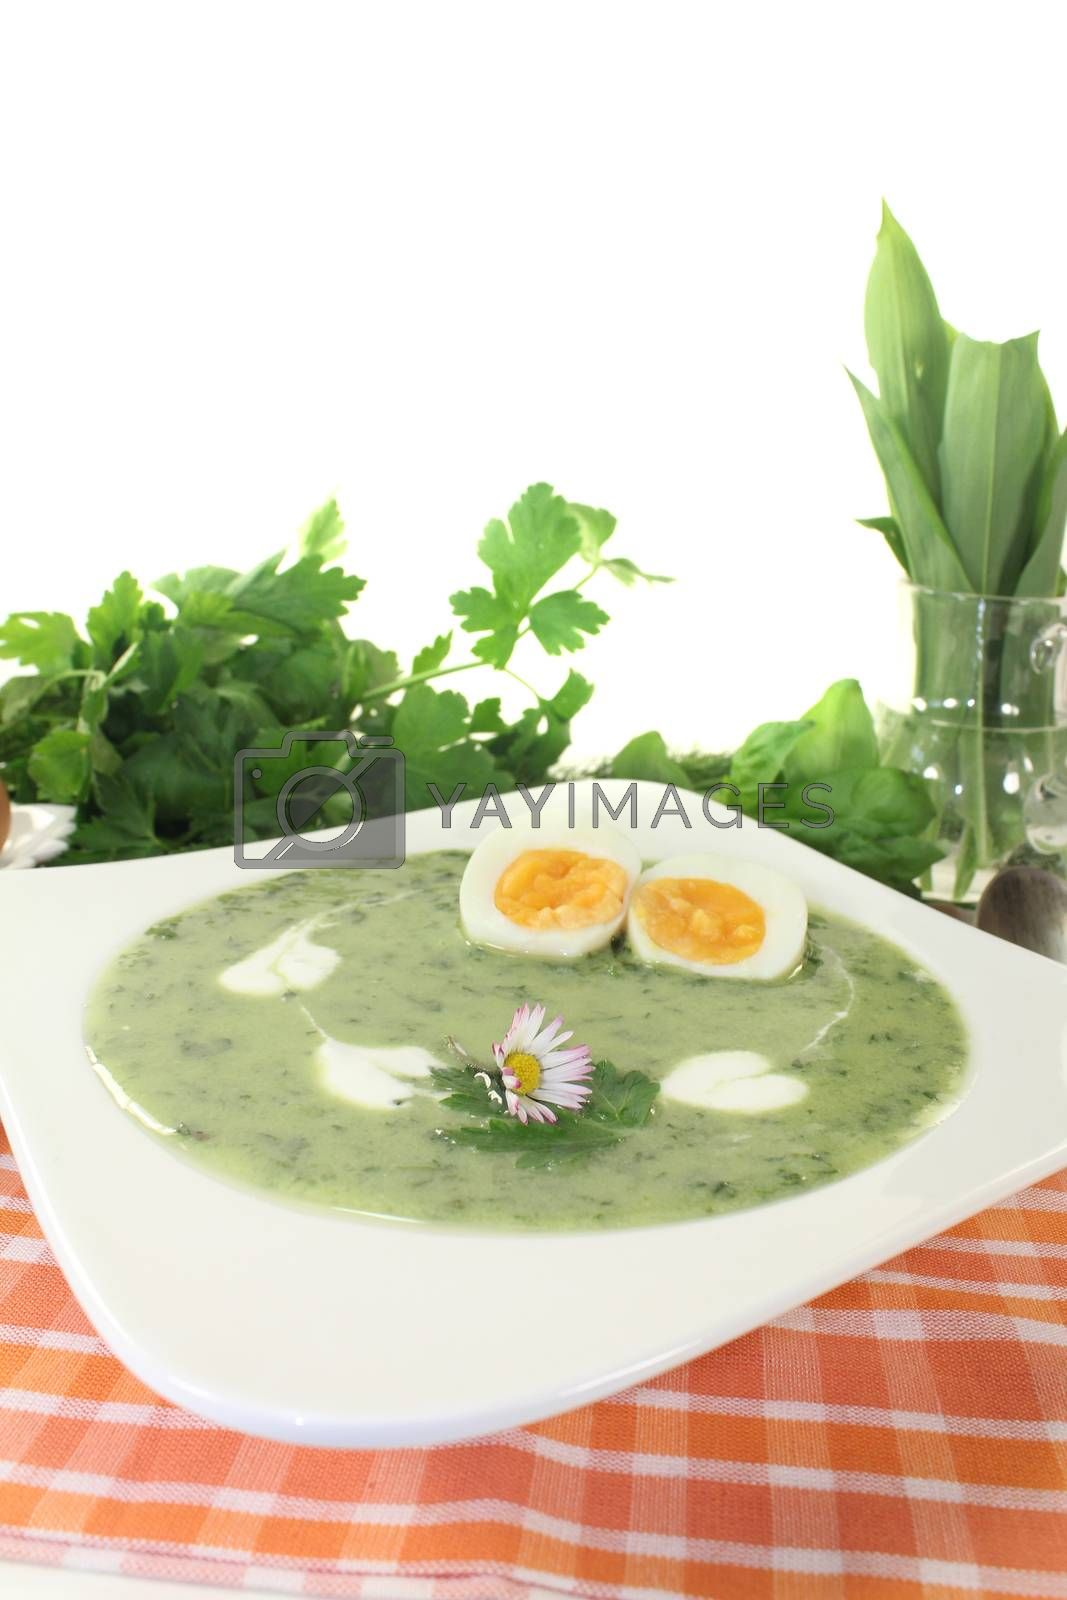 Royalty free image of herbs soup with eggs and a dollop of cream by discovery